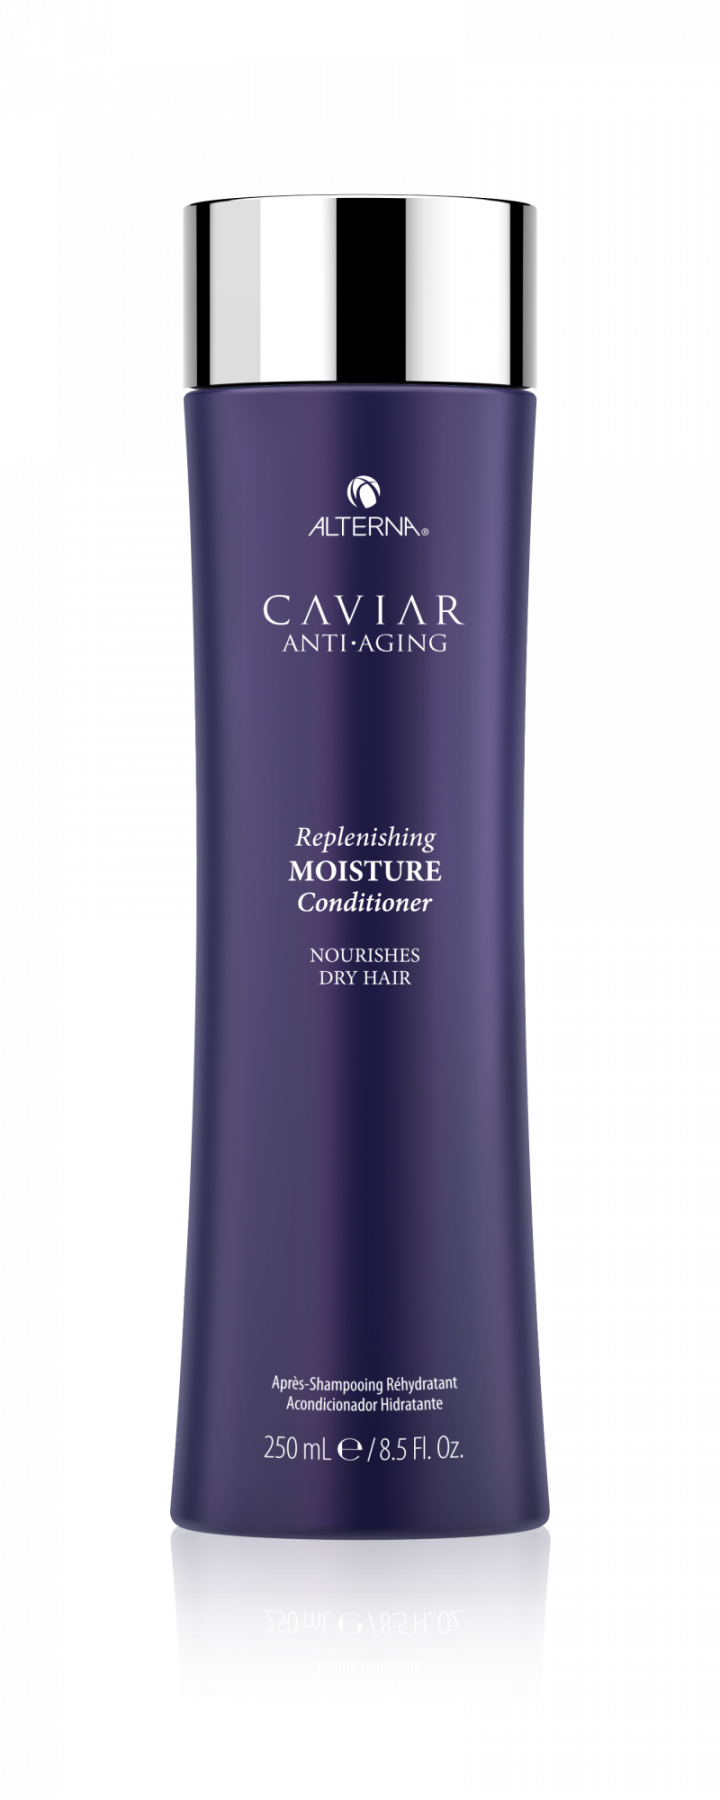 Caviar Anti-Aging REPLENISHING MOISTURE Conditioner